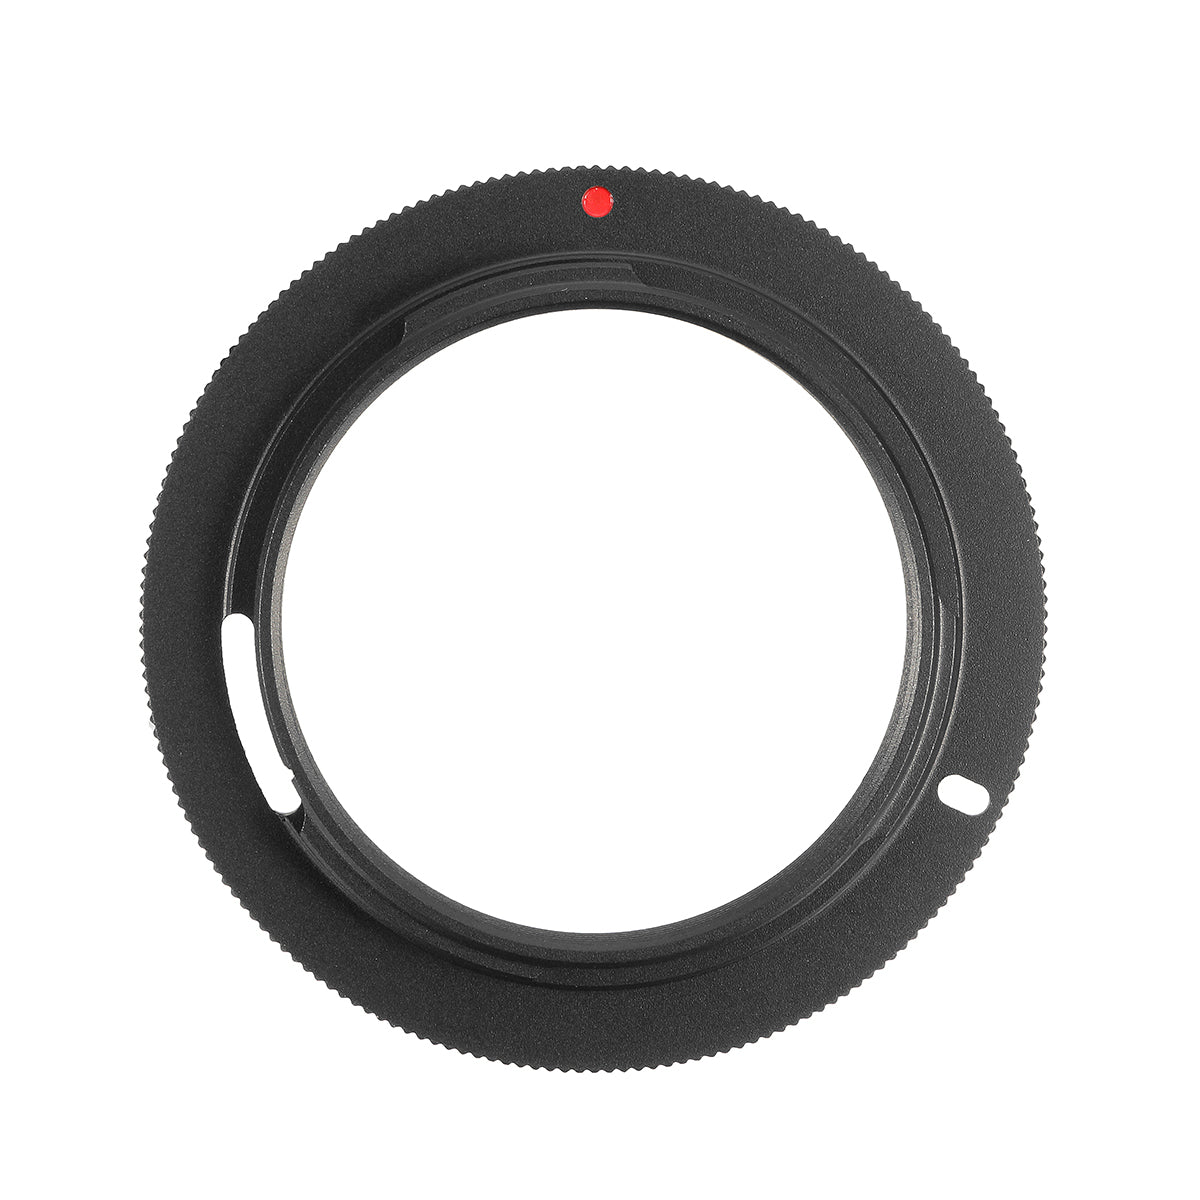 Black M42 Lens to PK Pentax Adapter Ring For Pentax KM K-M K-7 K-X K2000 K20D